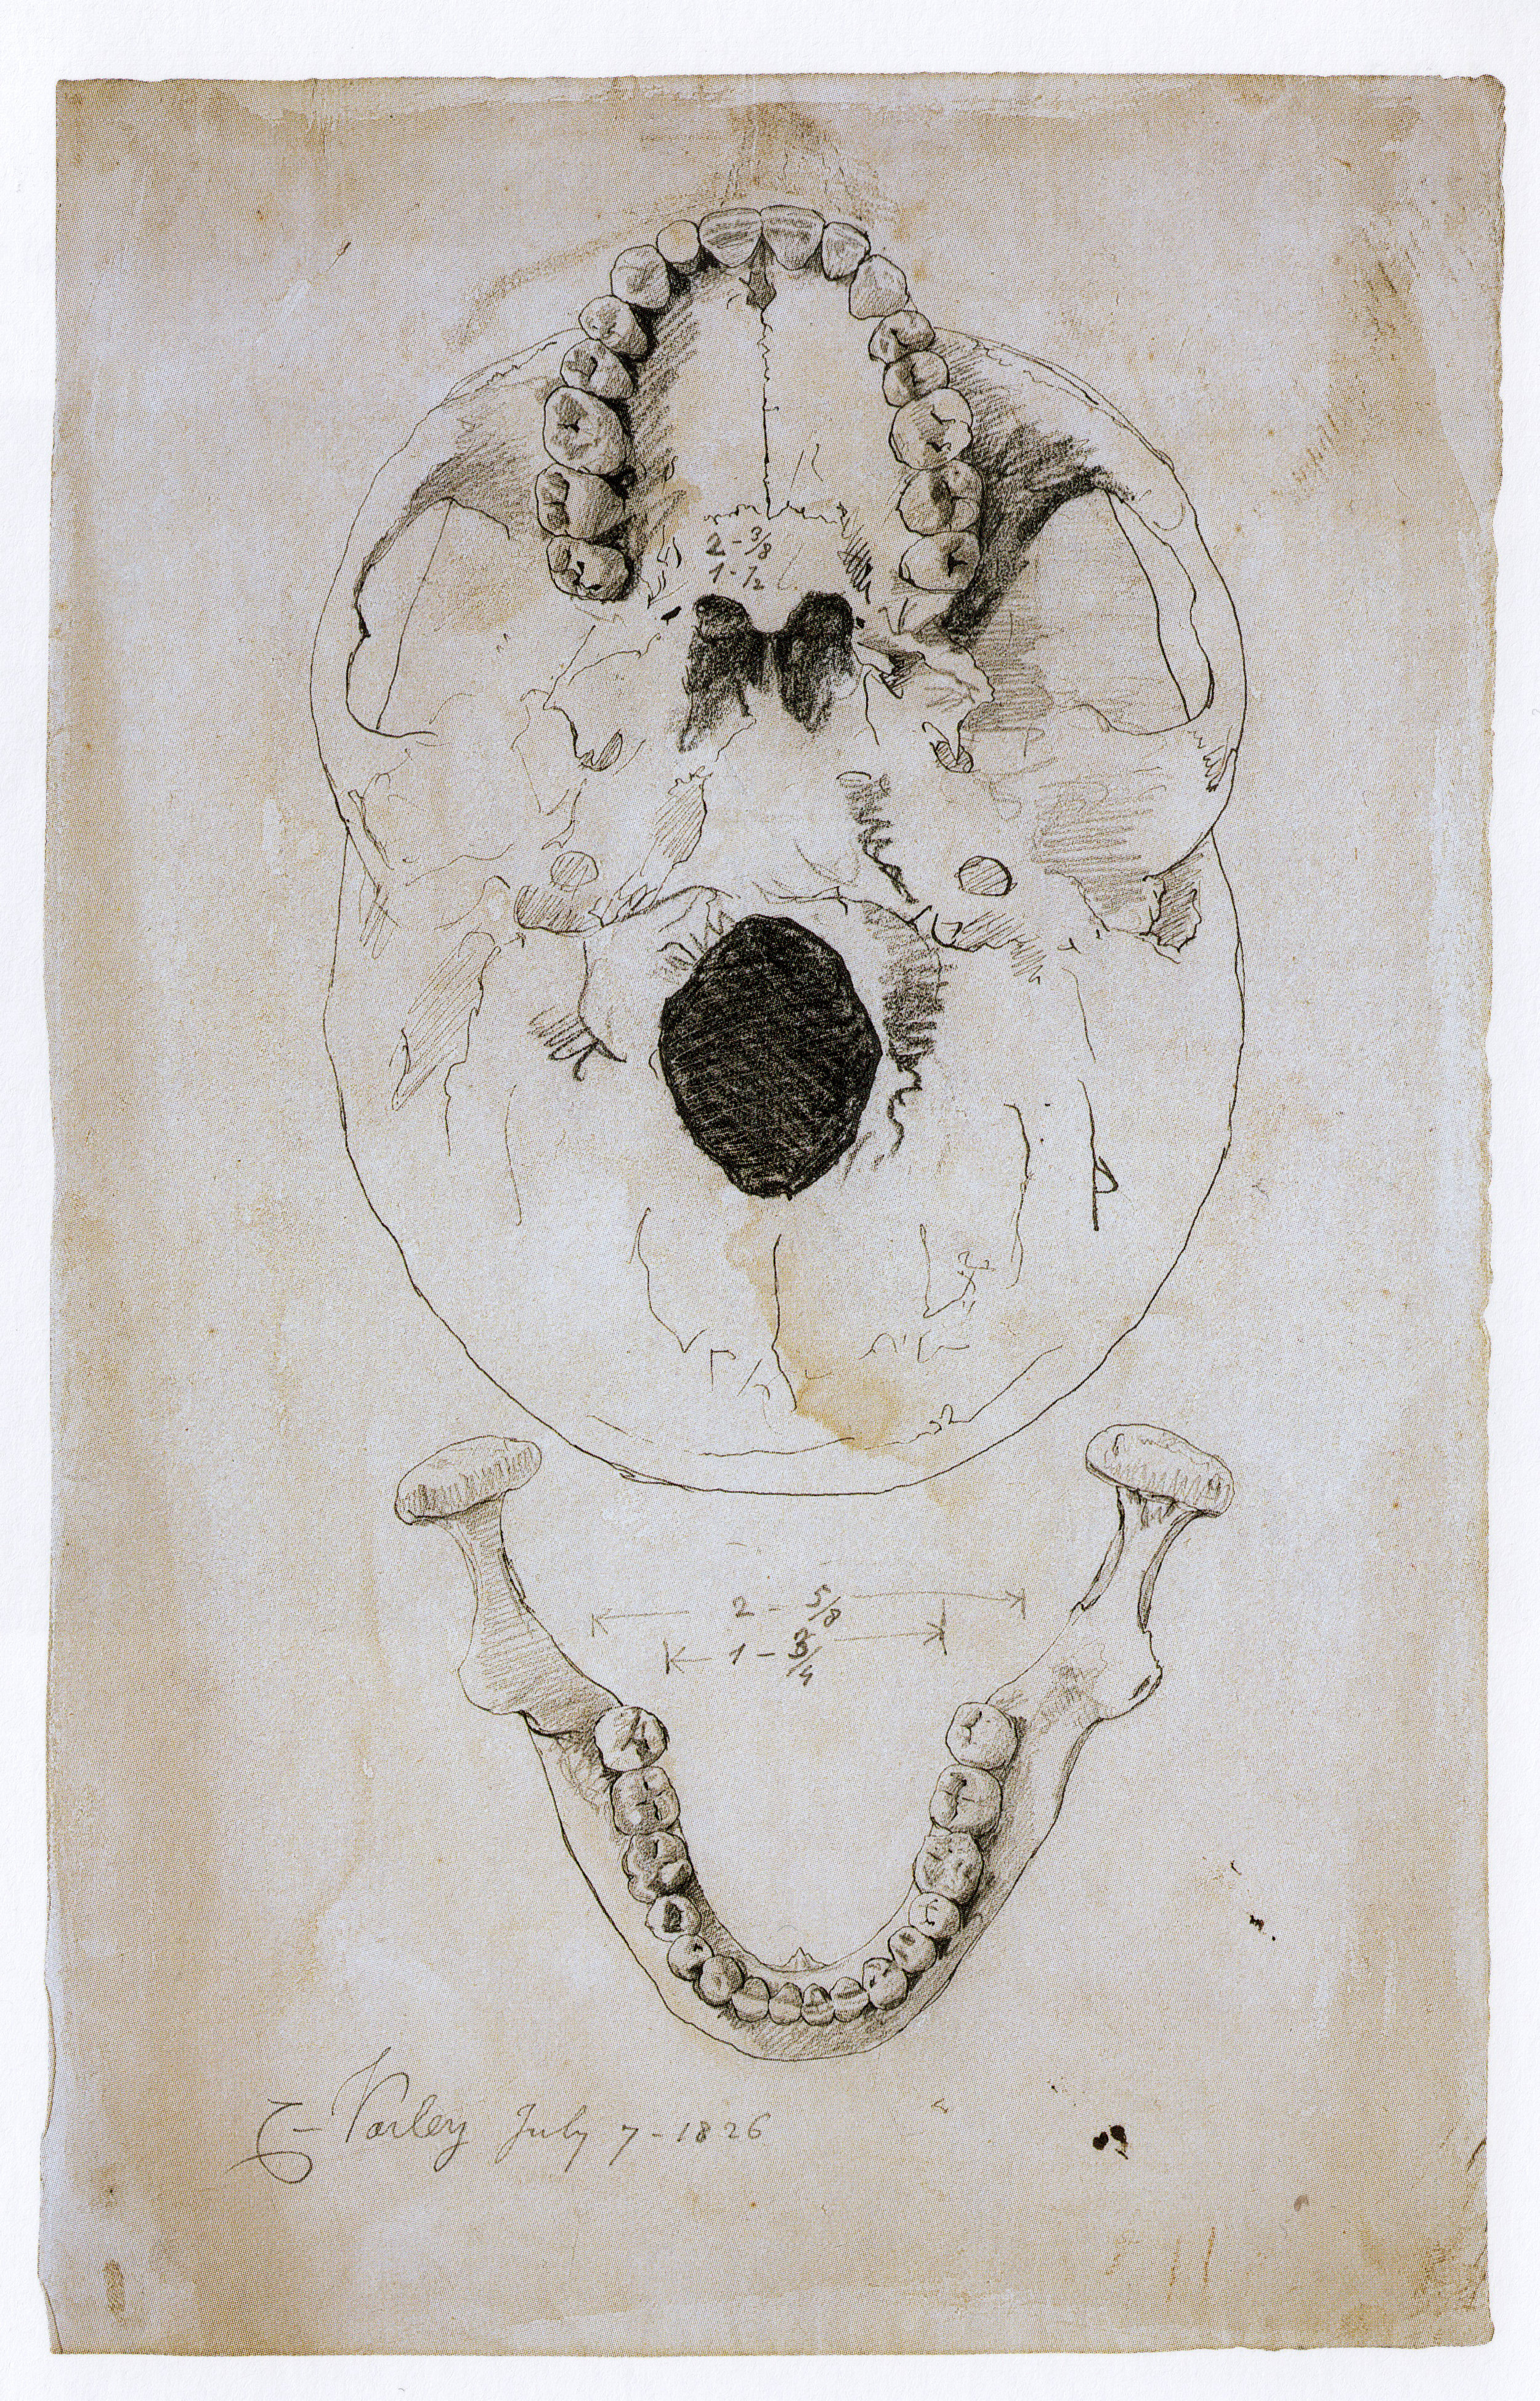 Cornelius Varley, Measured Drawing of Skull (1826). Made to demonstrate the Patent Graphic Telescope's ability to execute precise, measured drawing.